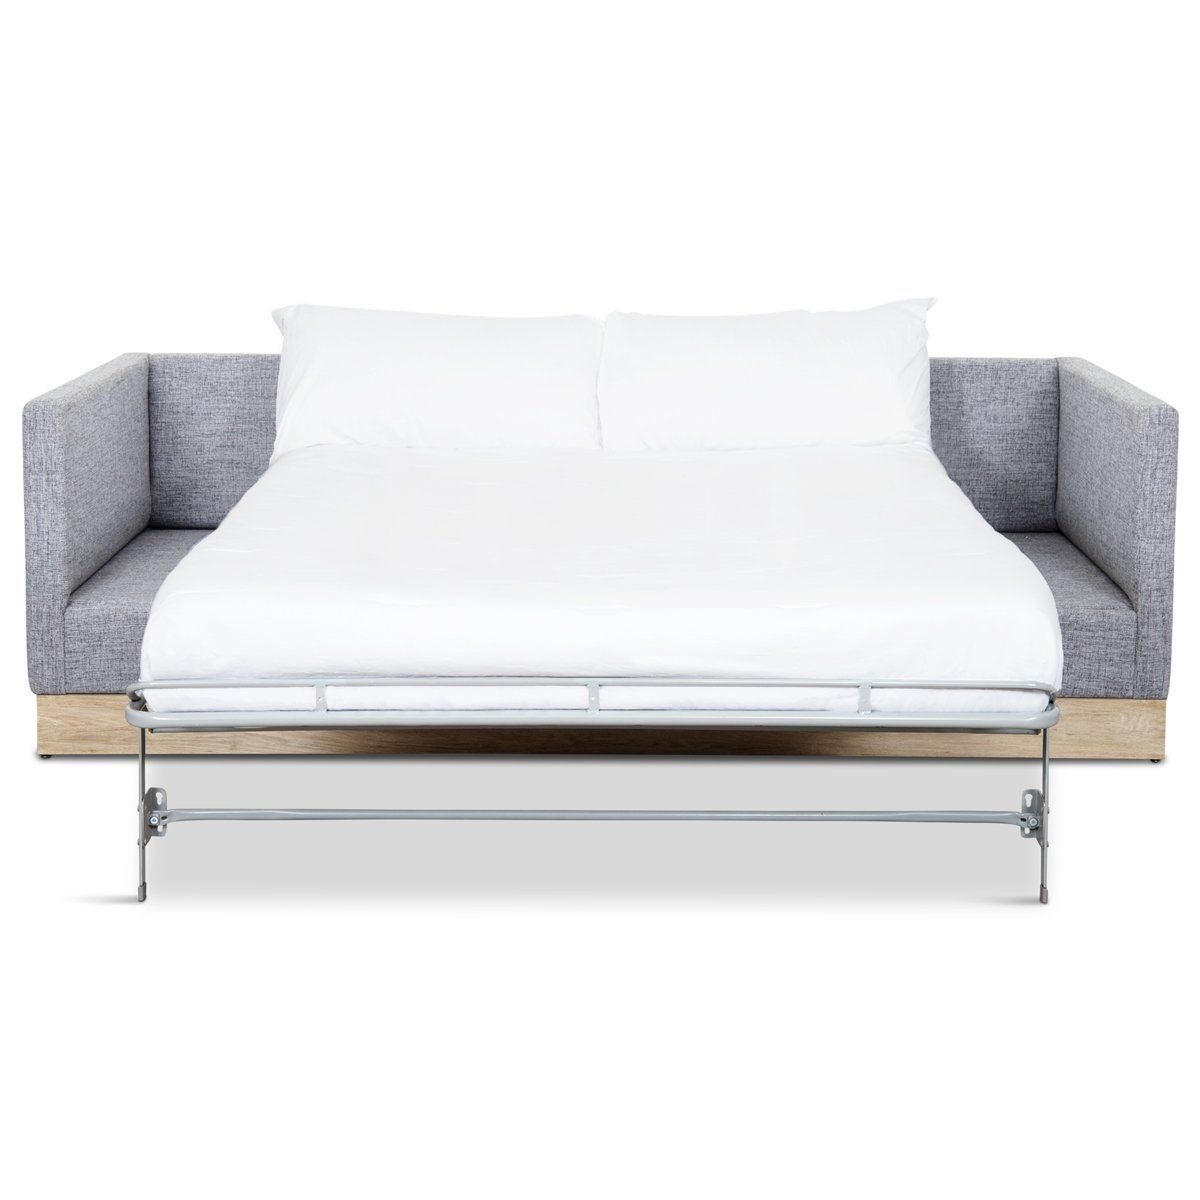 Sorrento Sofa With Pull Out Memory Foam Mattress Default Title In 2021 Comfortable Sofa Bed Versatile Sofa Pull Out Sofa Bed Sofa beds memory foam mattress